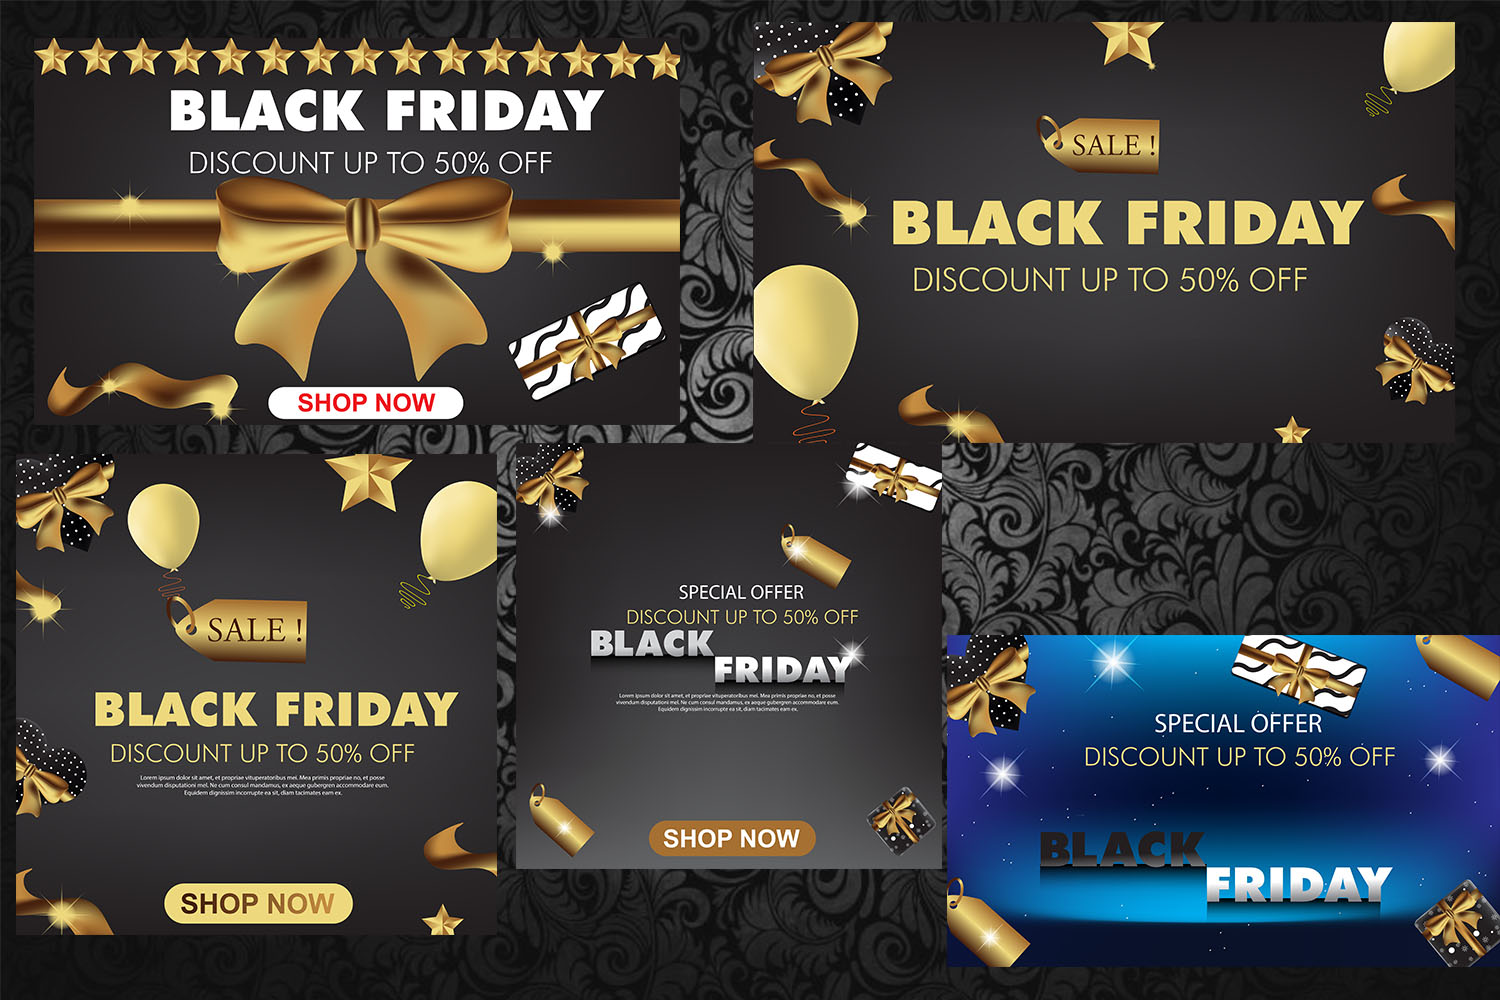 Black Friday Sale Template example image 3